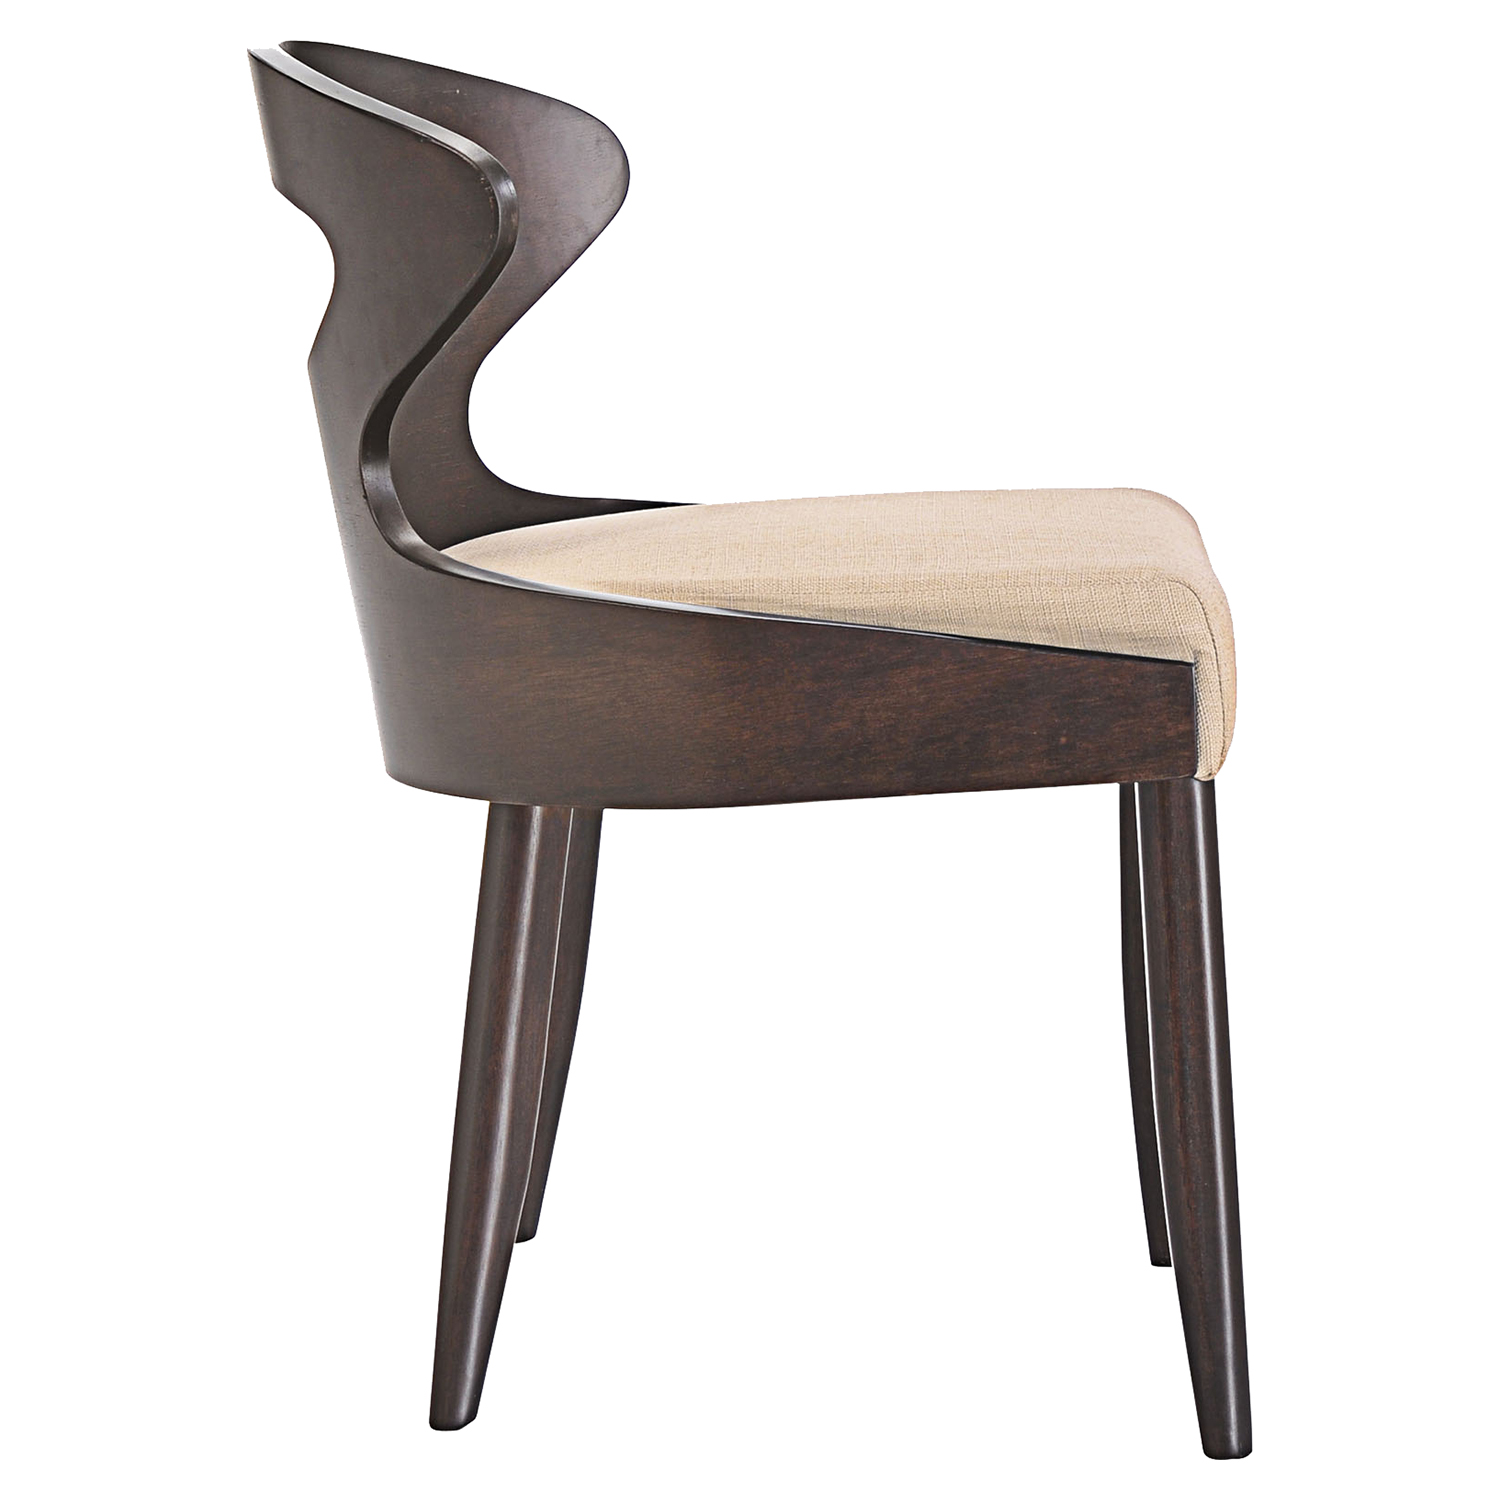 Transit Dining Side Chair - Walnut, Beige - EEI-1620-WAL-BEI